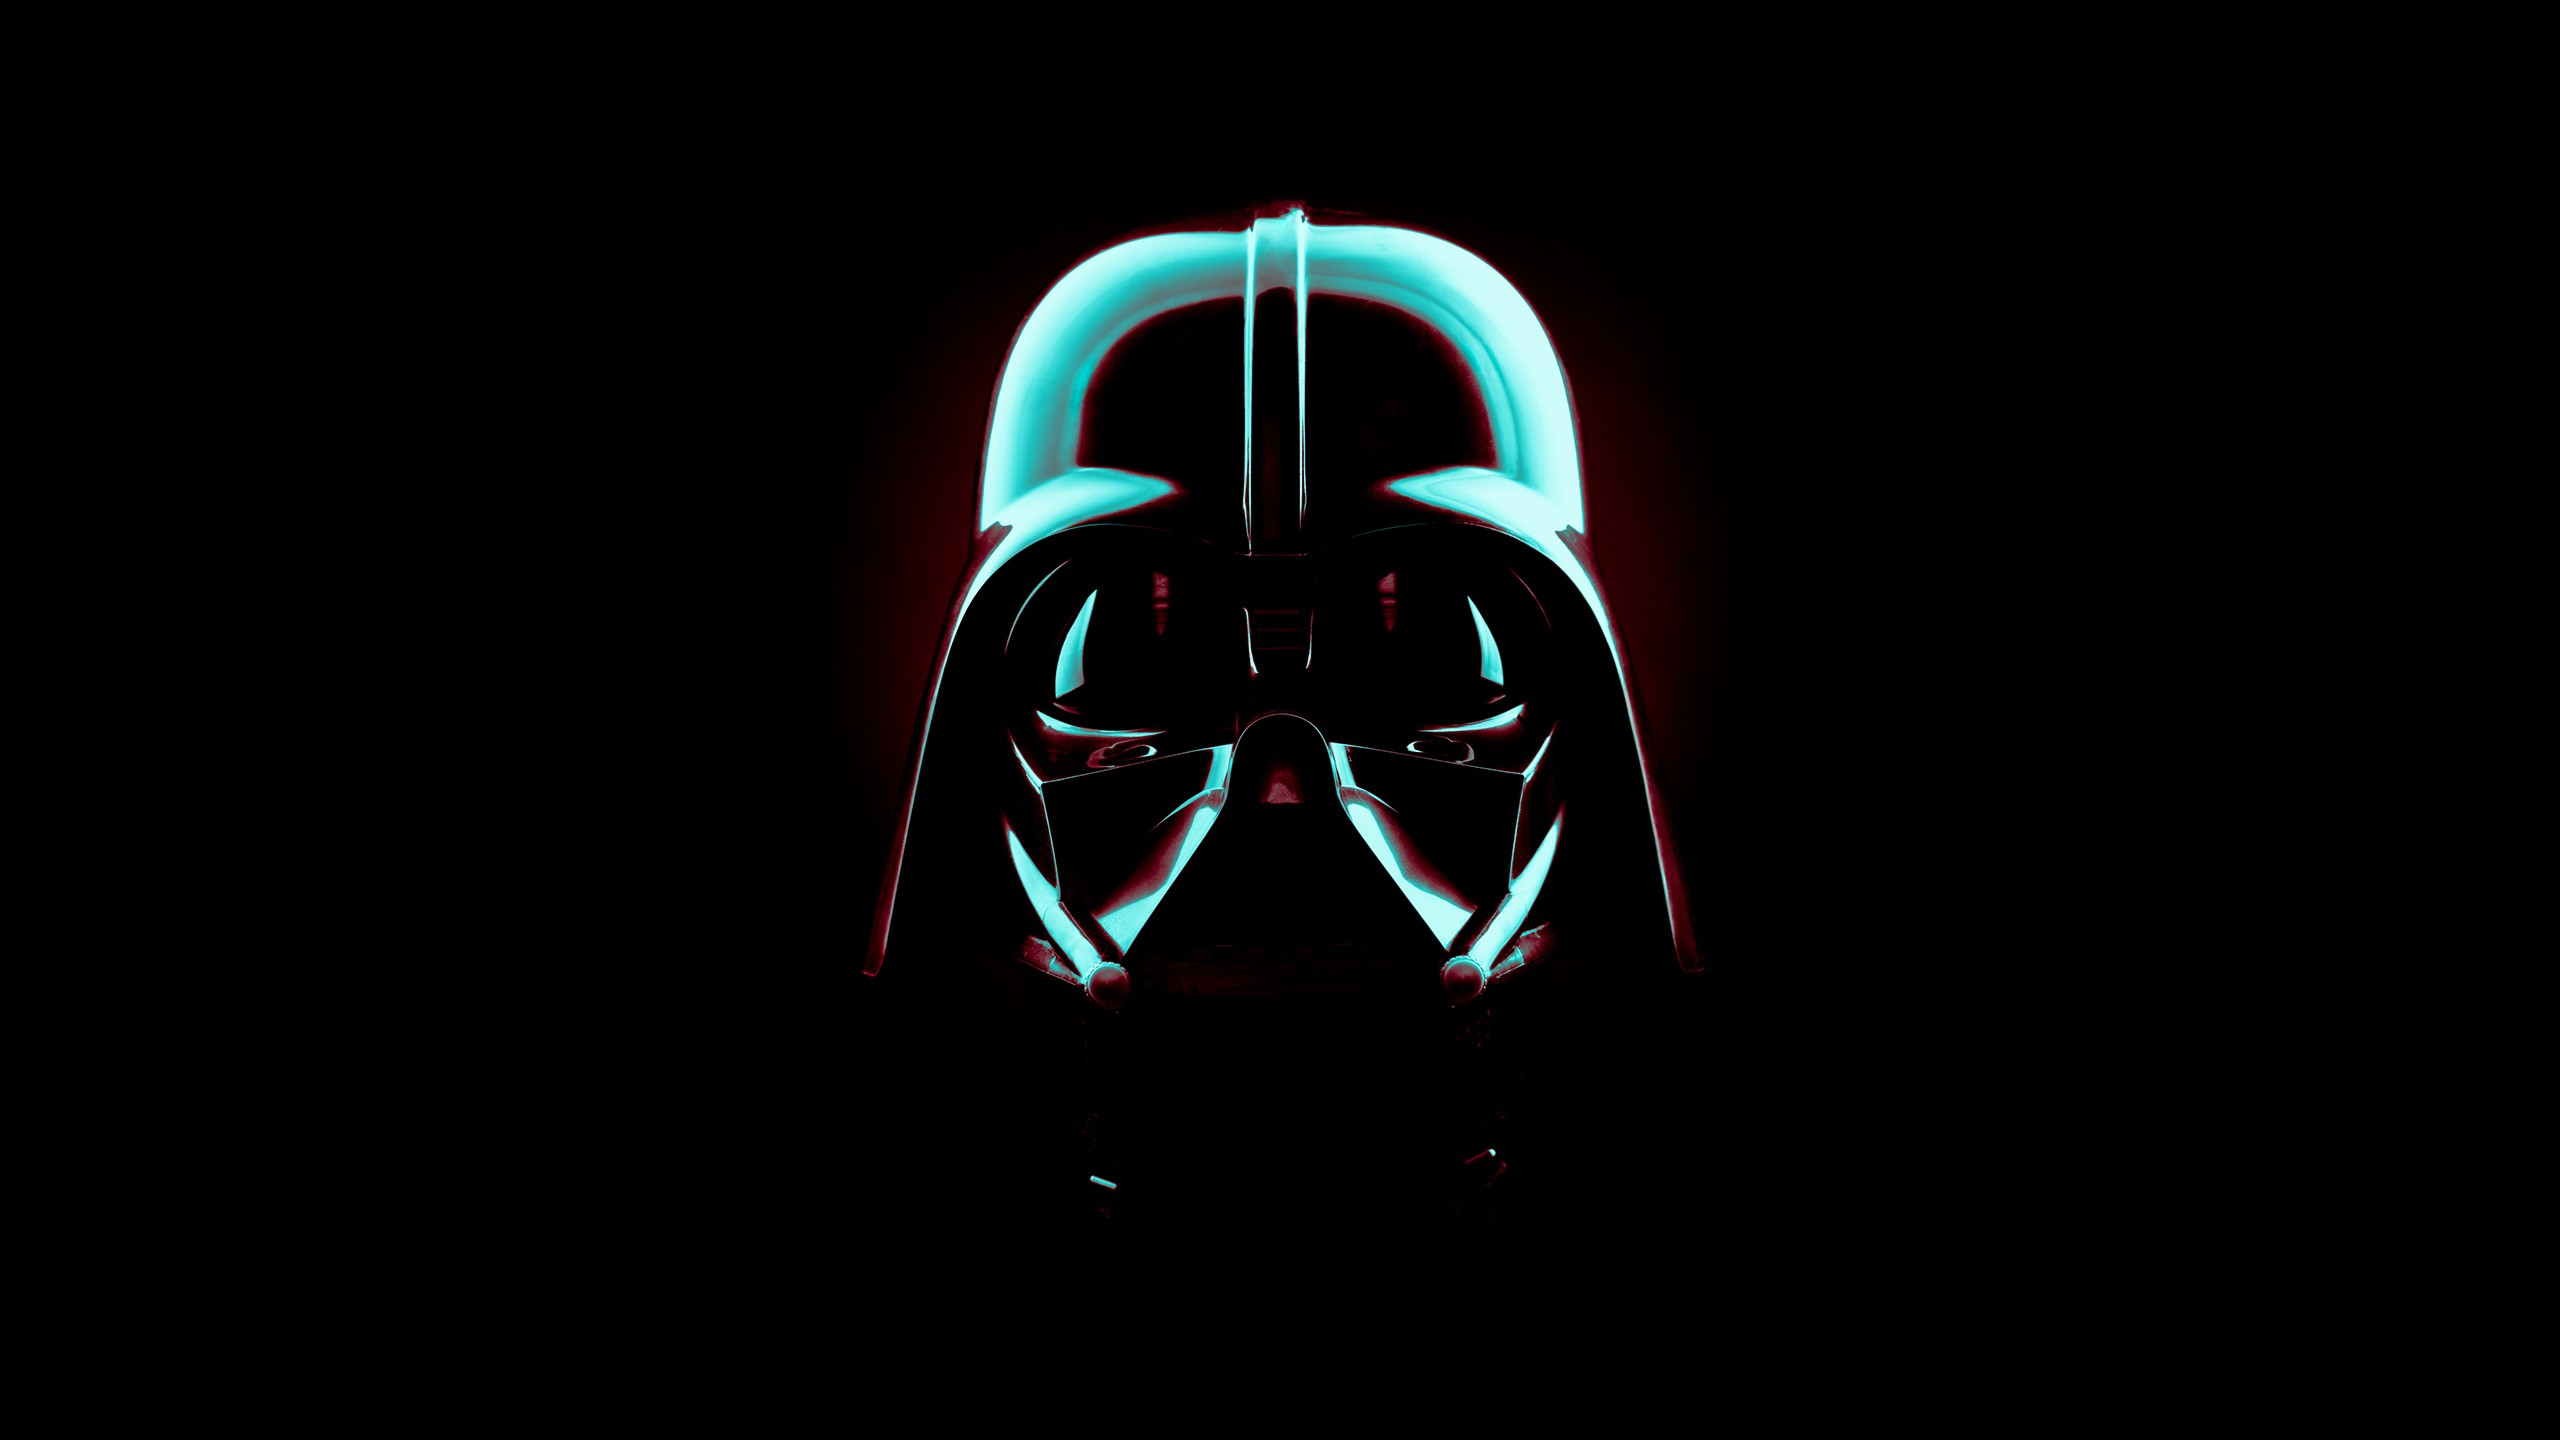 vader wallpapers  WallpaperUP 2560x1440